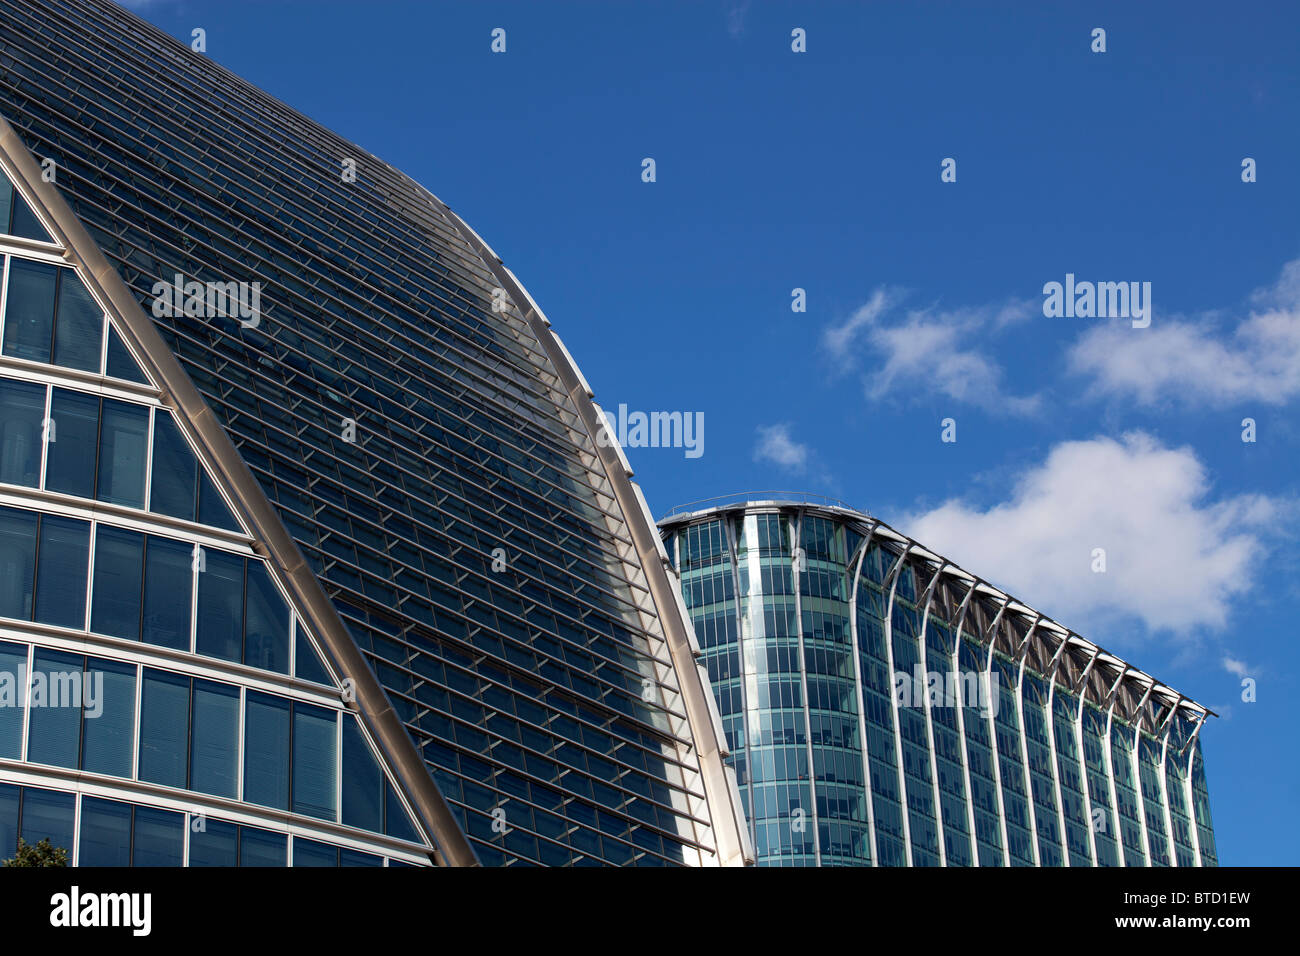 Moor House (L) and Citypoint buildings, London, UK - Stock Image